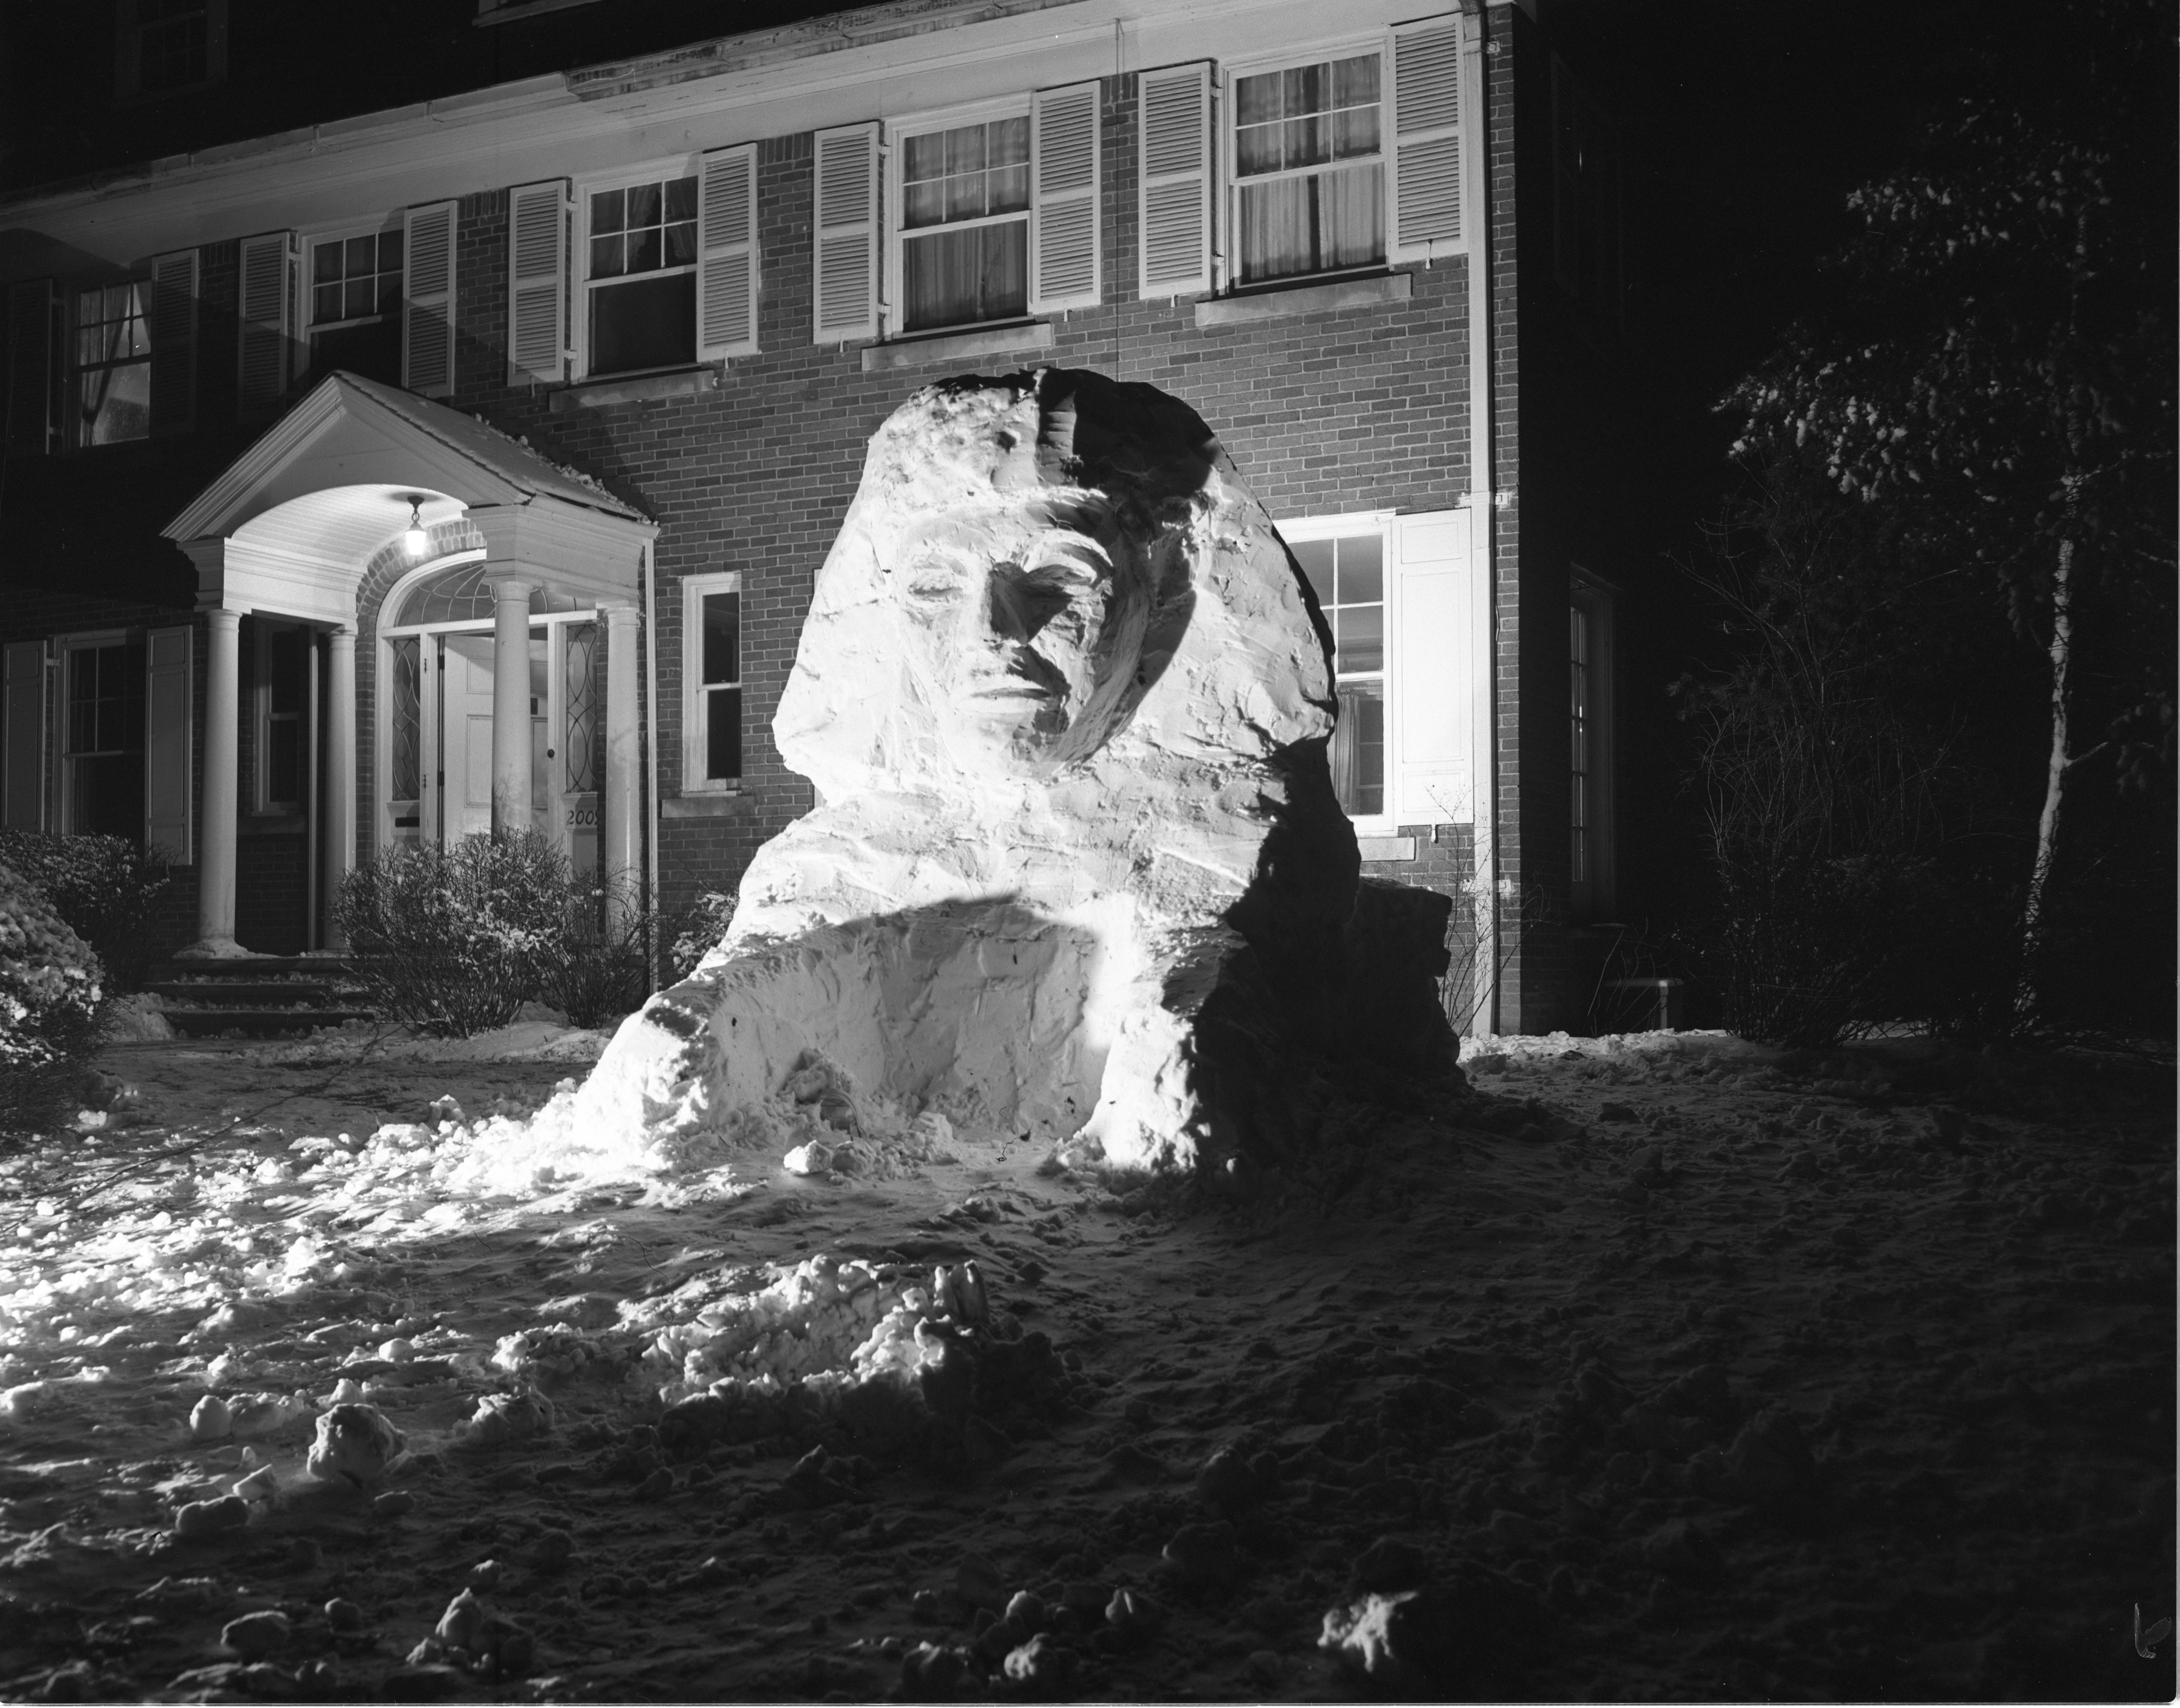 Snow Sphinx, January 1951 image